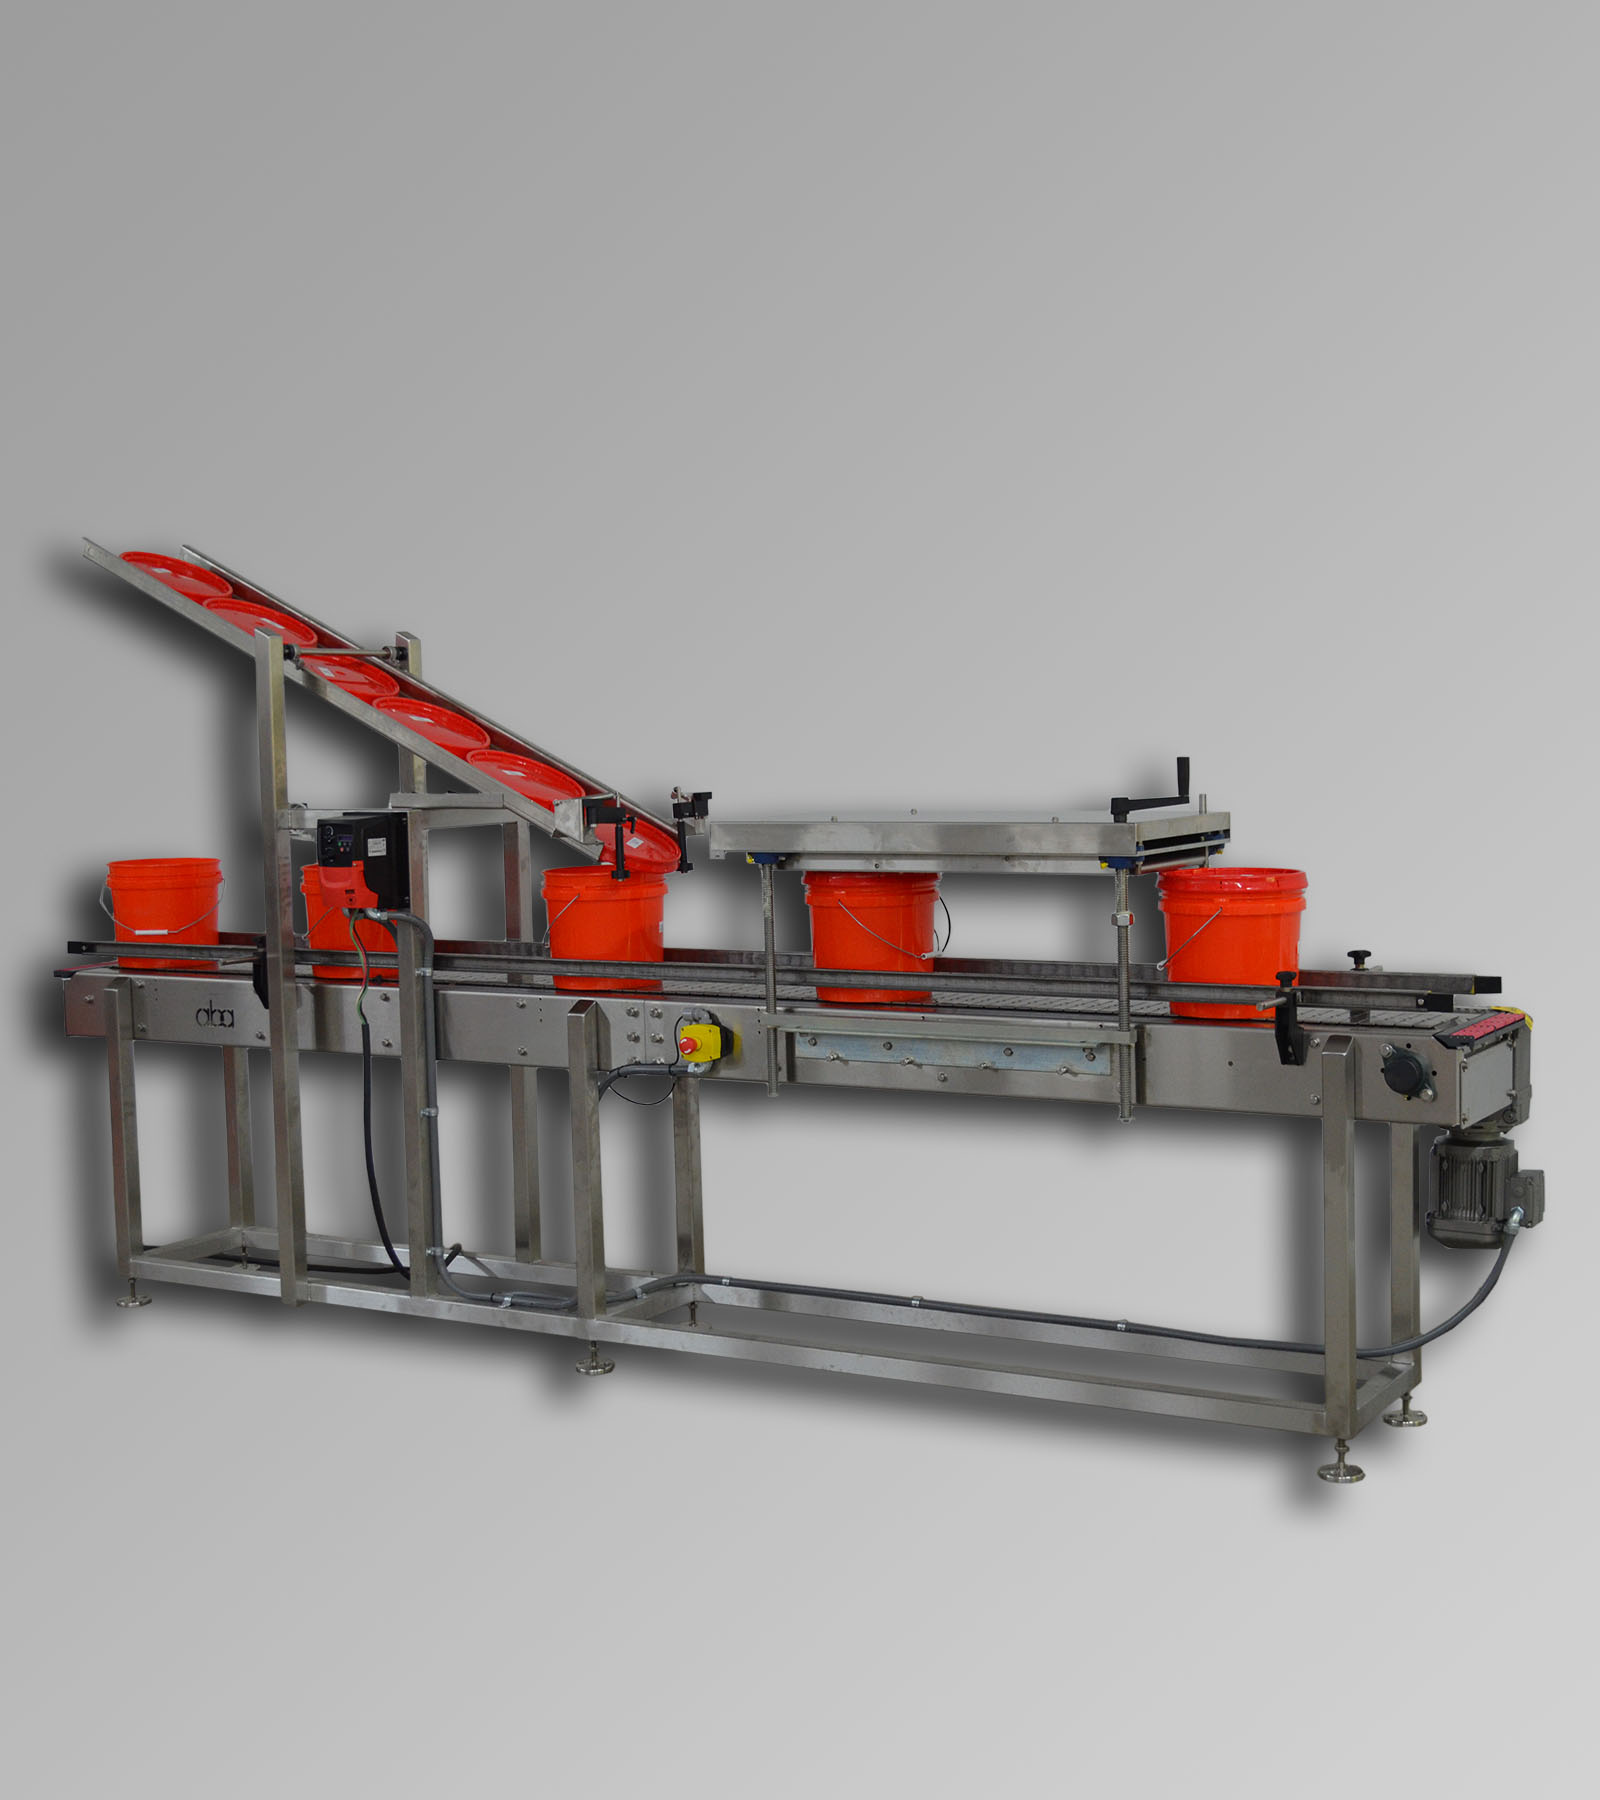 ABA-M369 Conveyor, press, lid chute